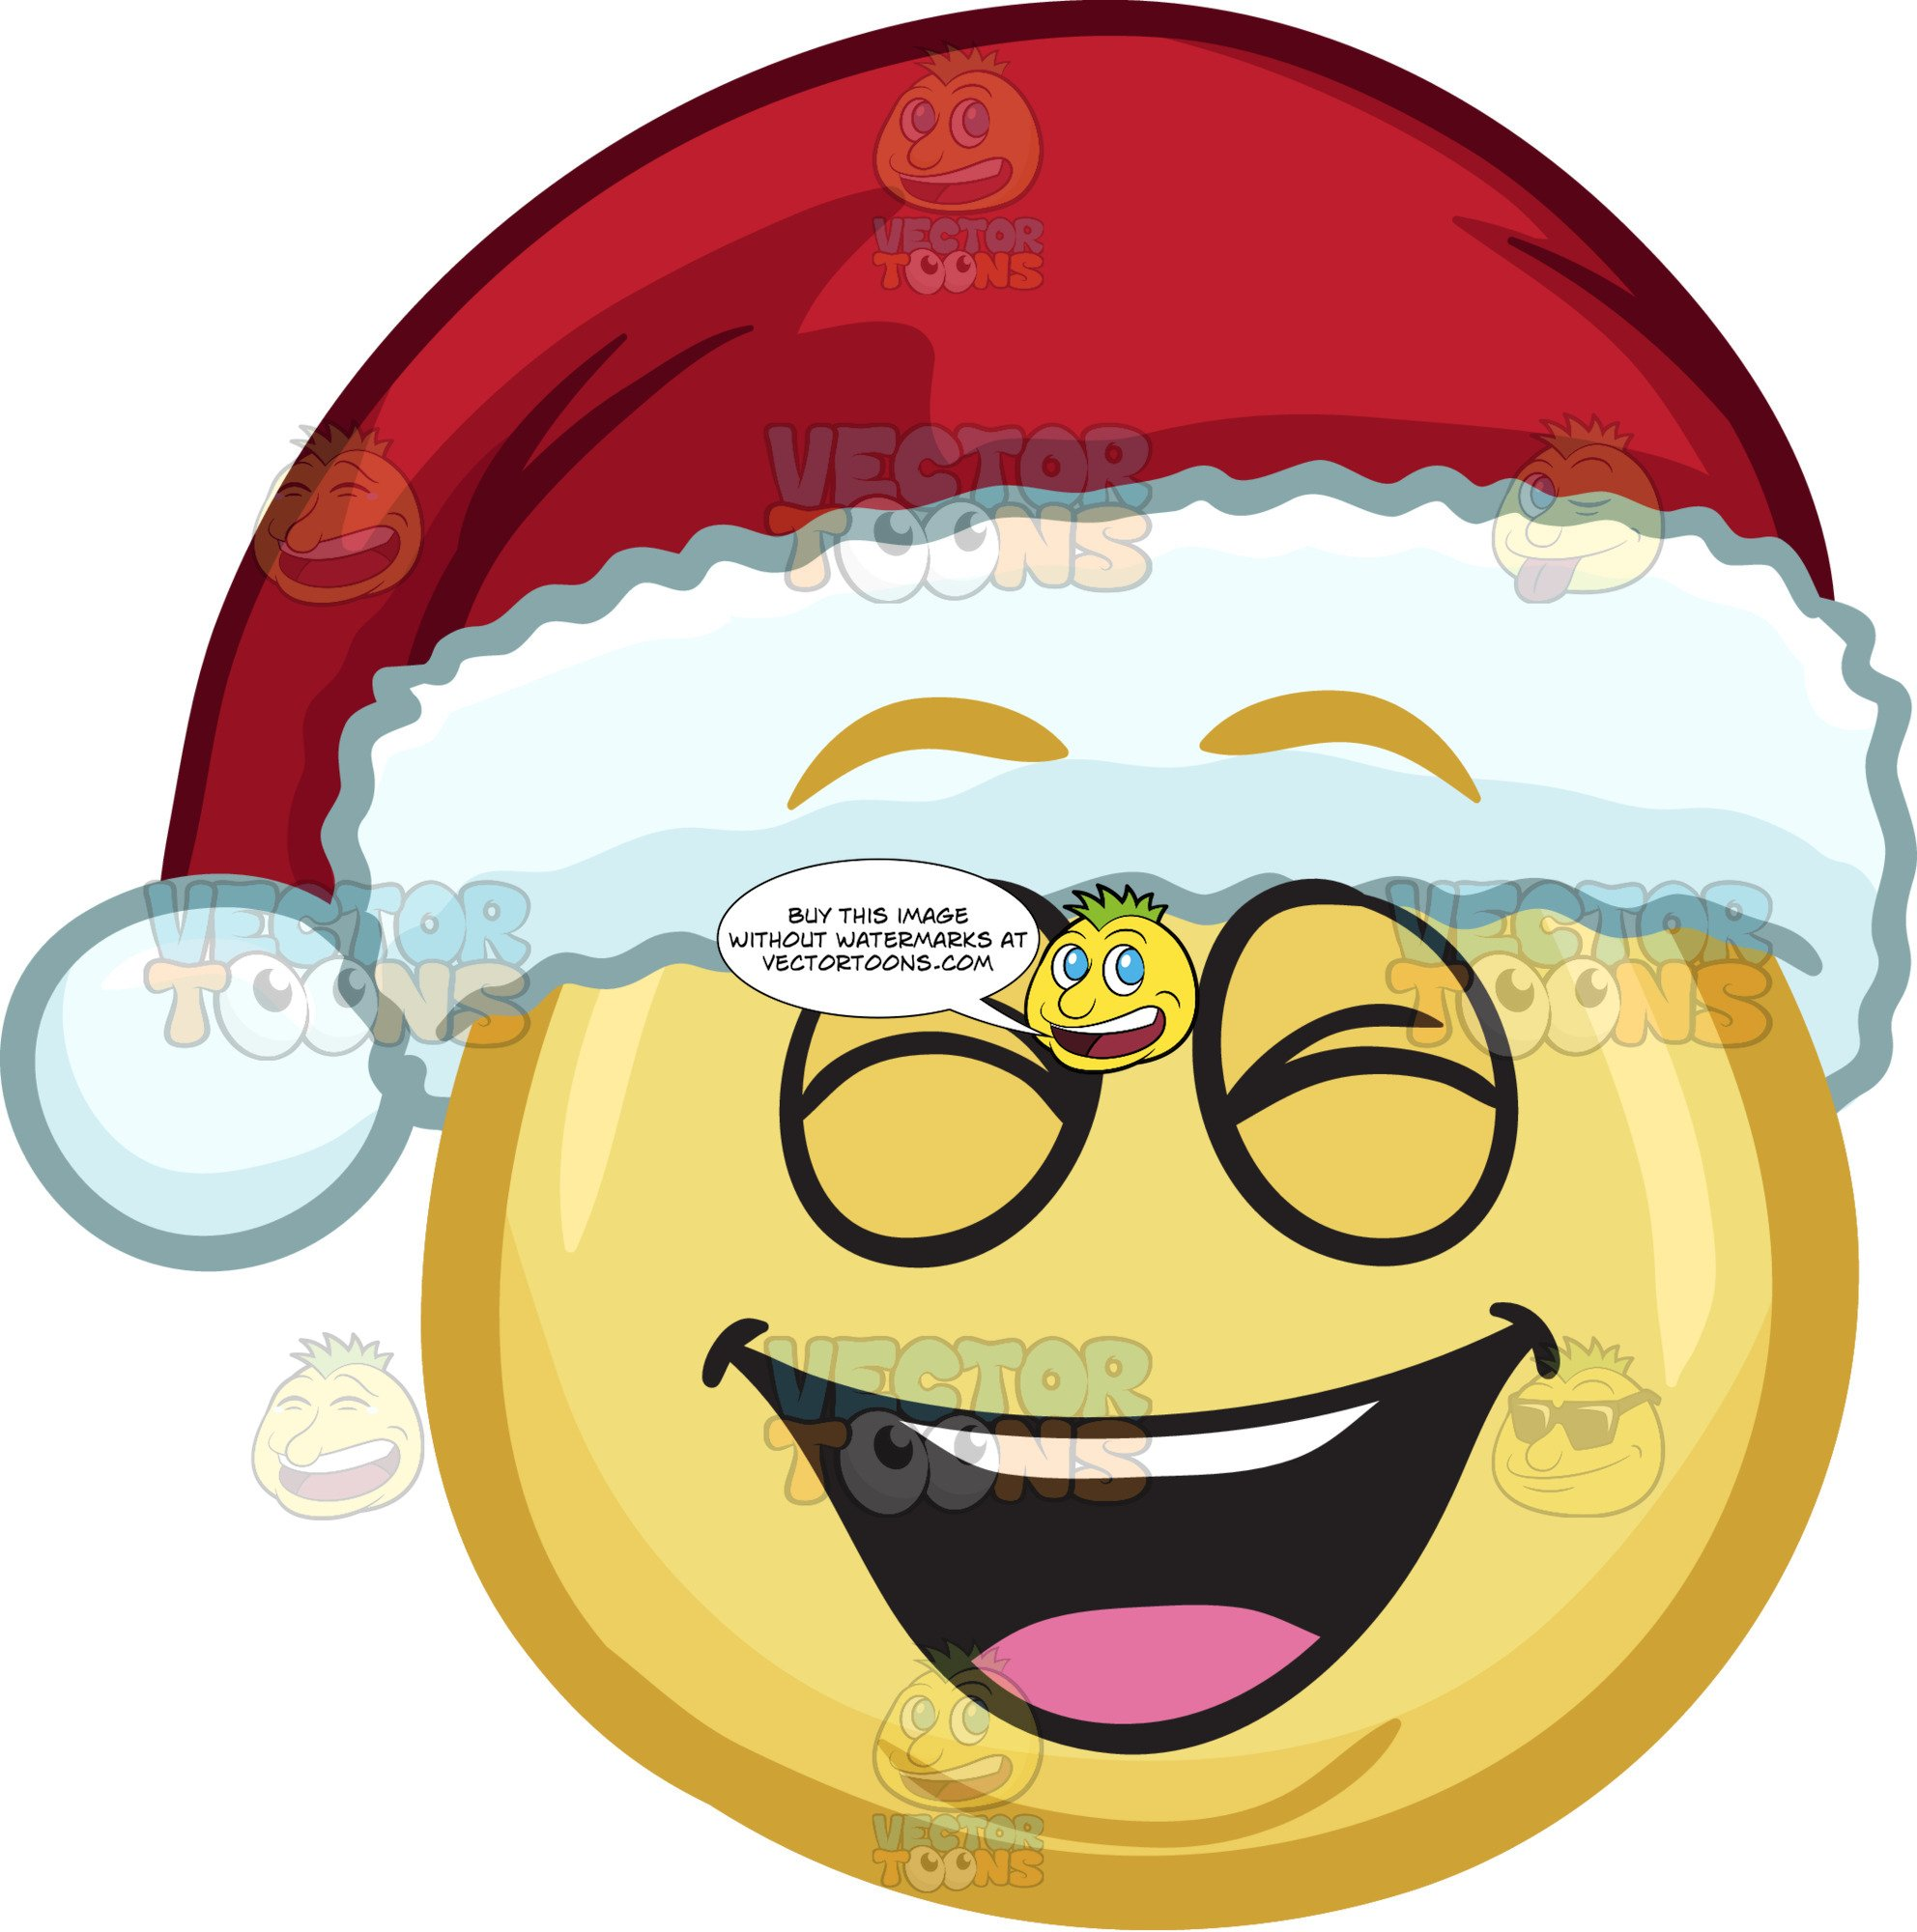 Santa laughing clipart jpg royalty free stock A Laughing Emoji Wearing A Santa Hat jpg royalty free stock